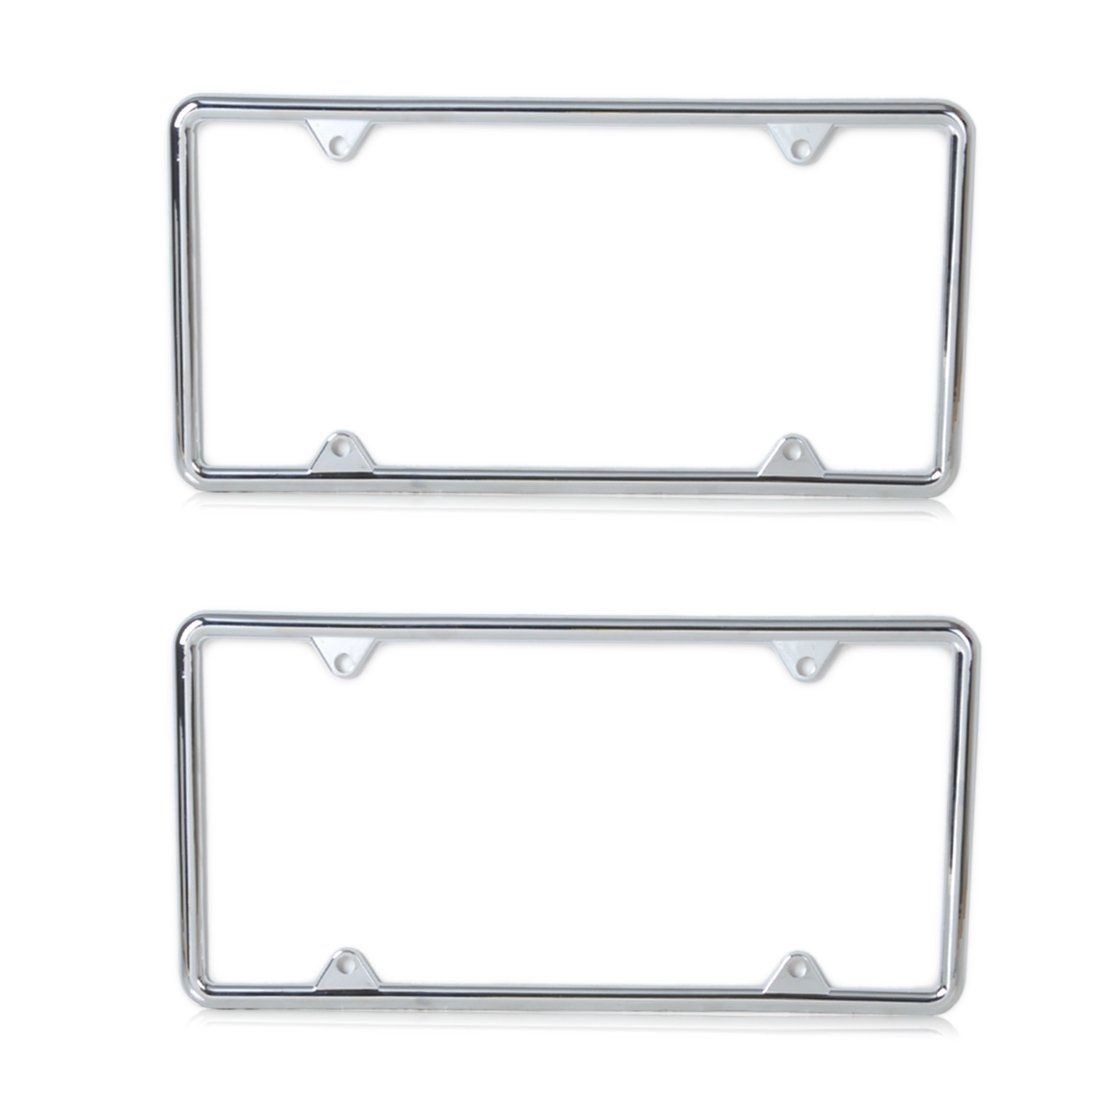 2pcs New Silver Zinc Alloy License Plate Frame Universal for VW Polo ...